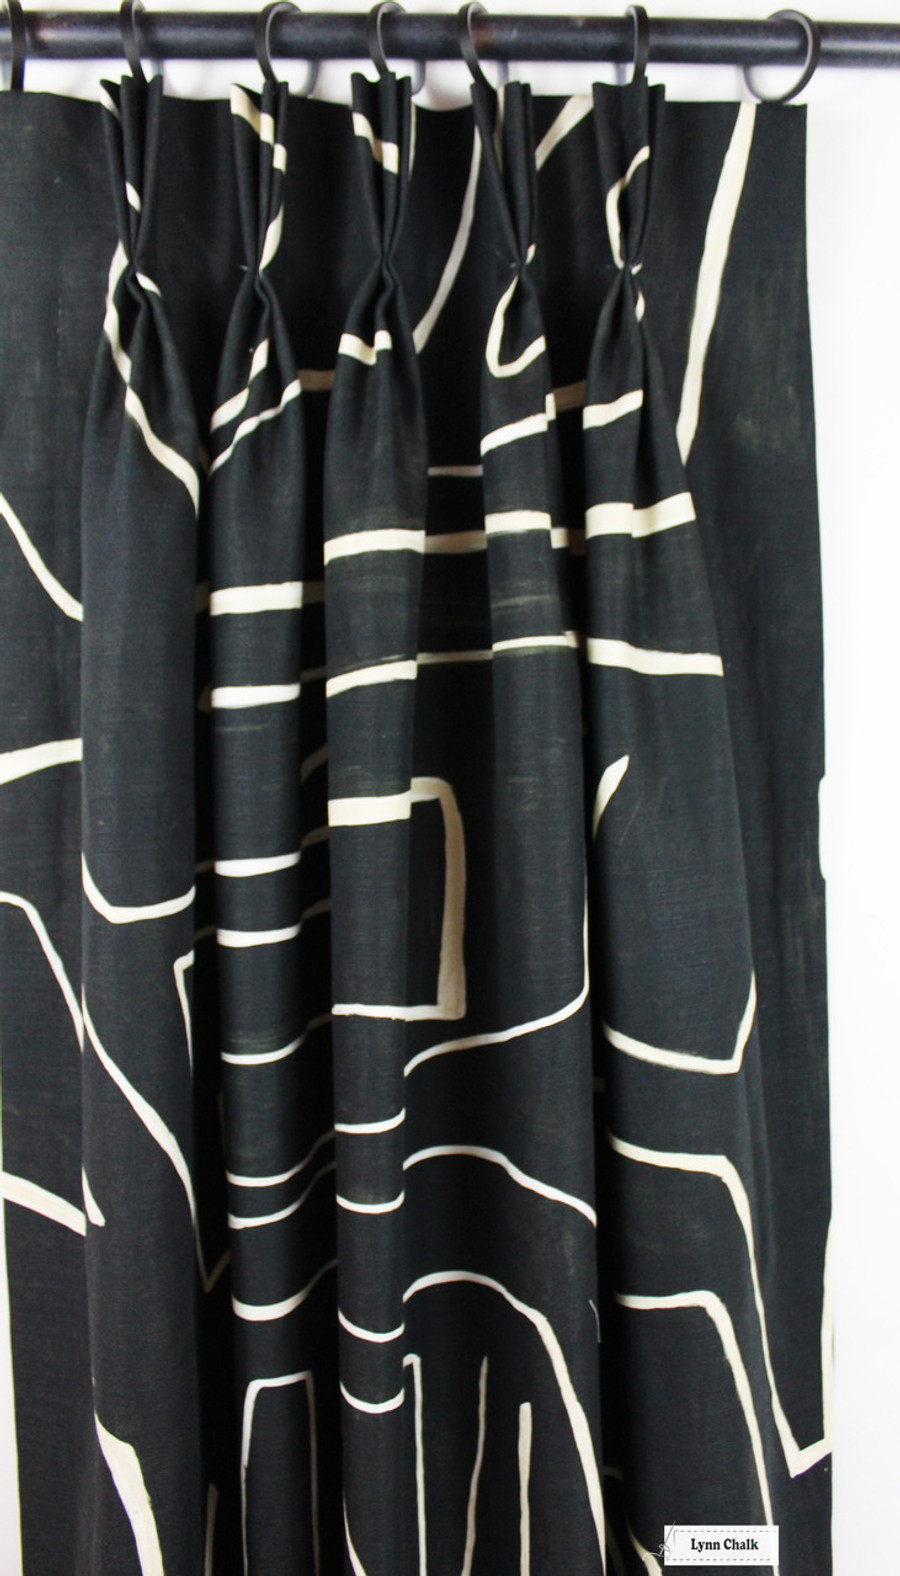 Kelly Wearstler for Lee Jofa Graffito Roman Shades (shown in Salmon/Cream-comes in several colors)